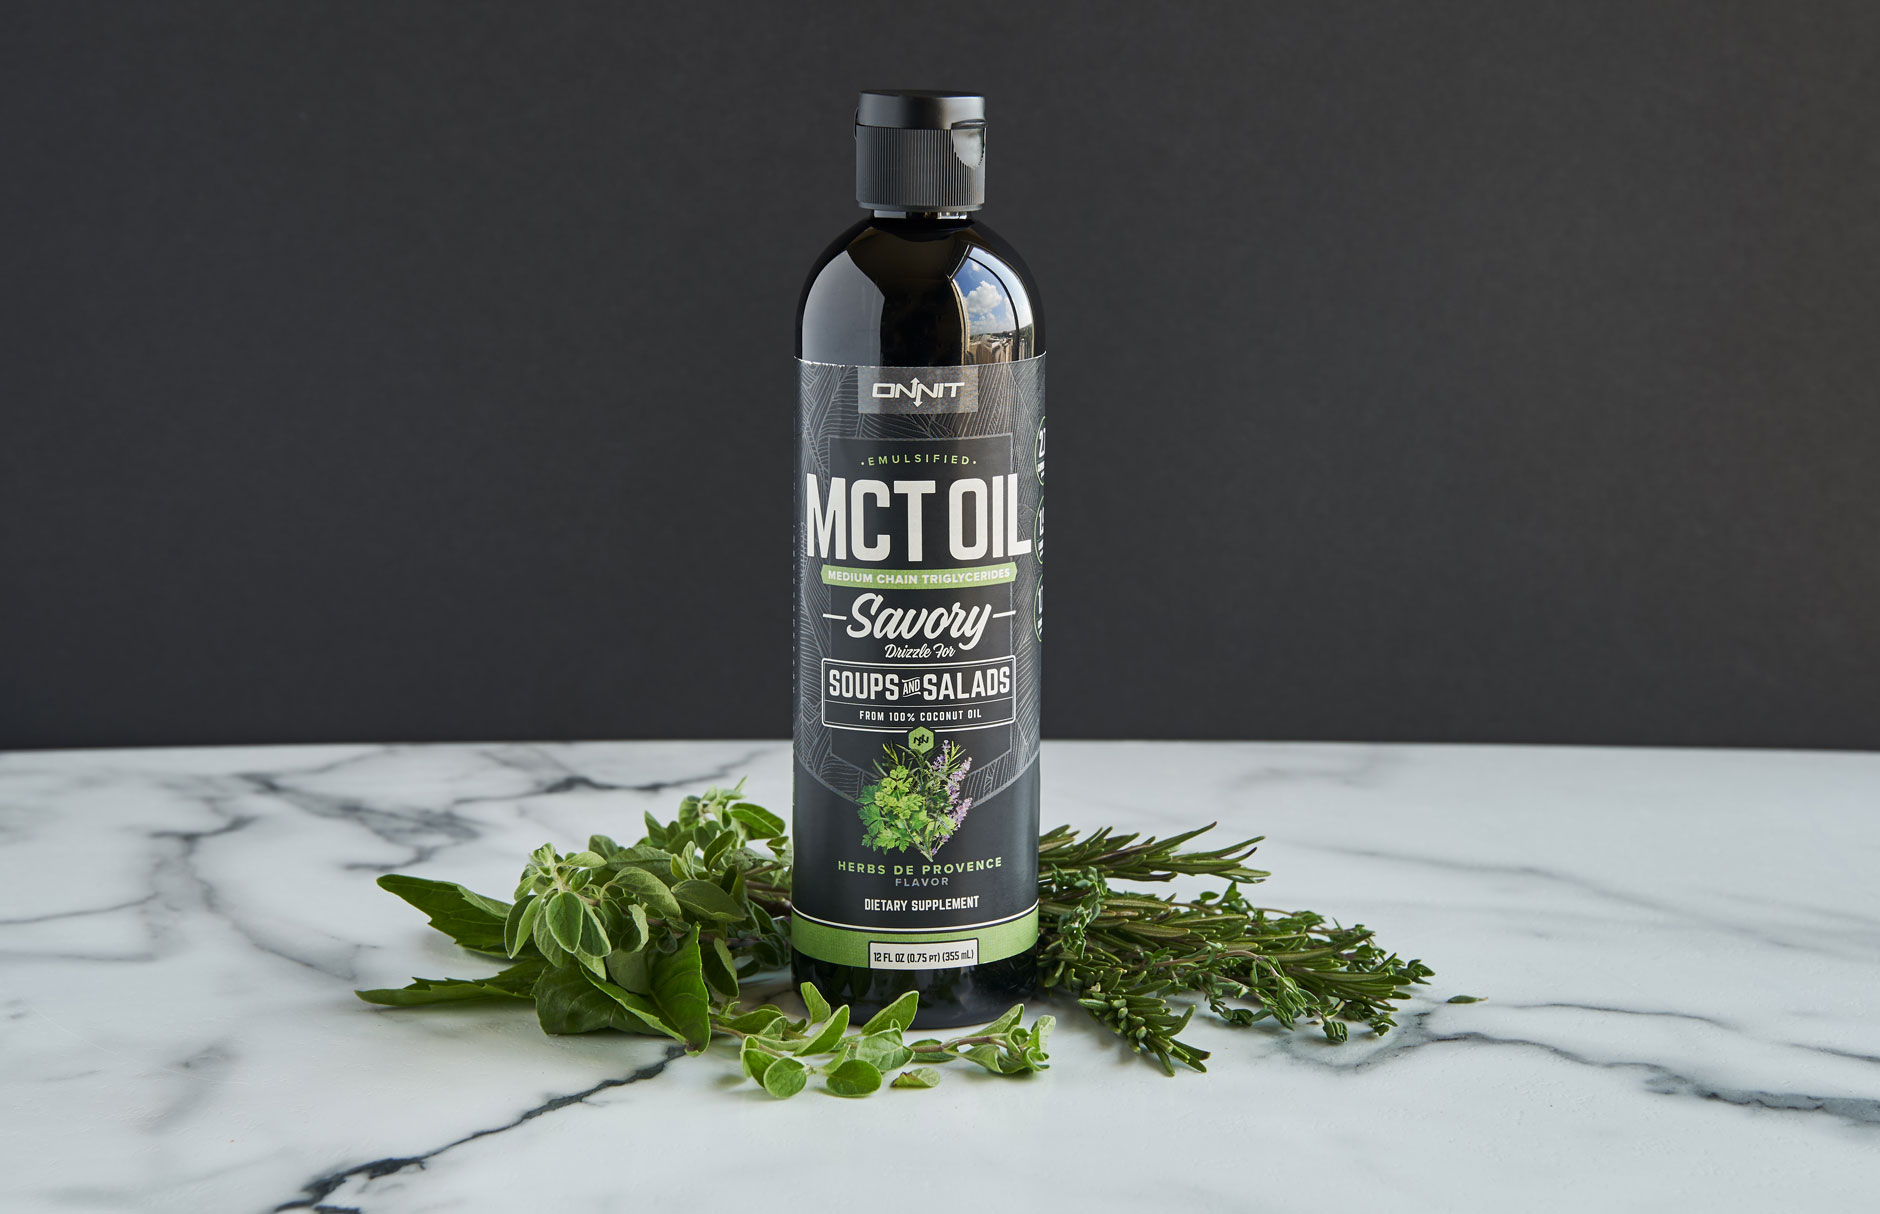 Onnit Savory Emulsified MCT Oil, Herbs de Provence Flavor